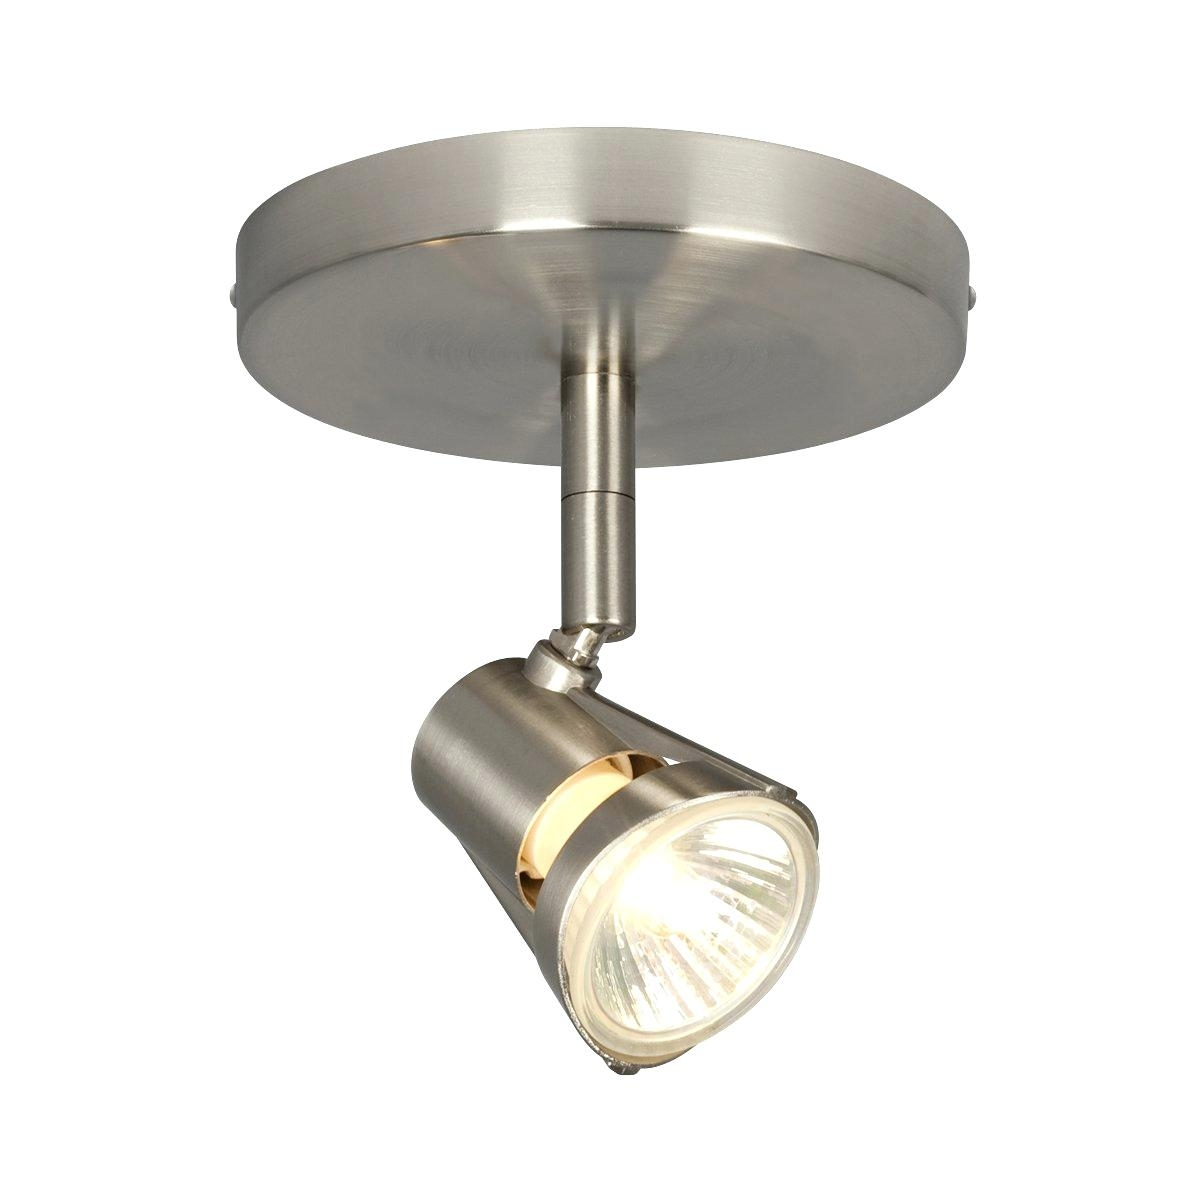 Ceiling Lights ~ Directional Ceiling Light Adjustable Rail For Or Intended For Outdoor Directional Ceiling Lights (#5 of 15)